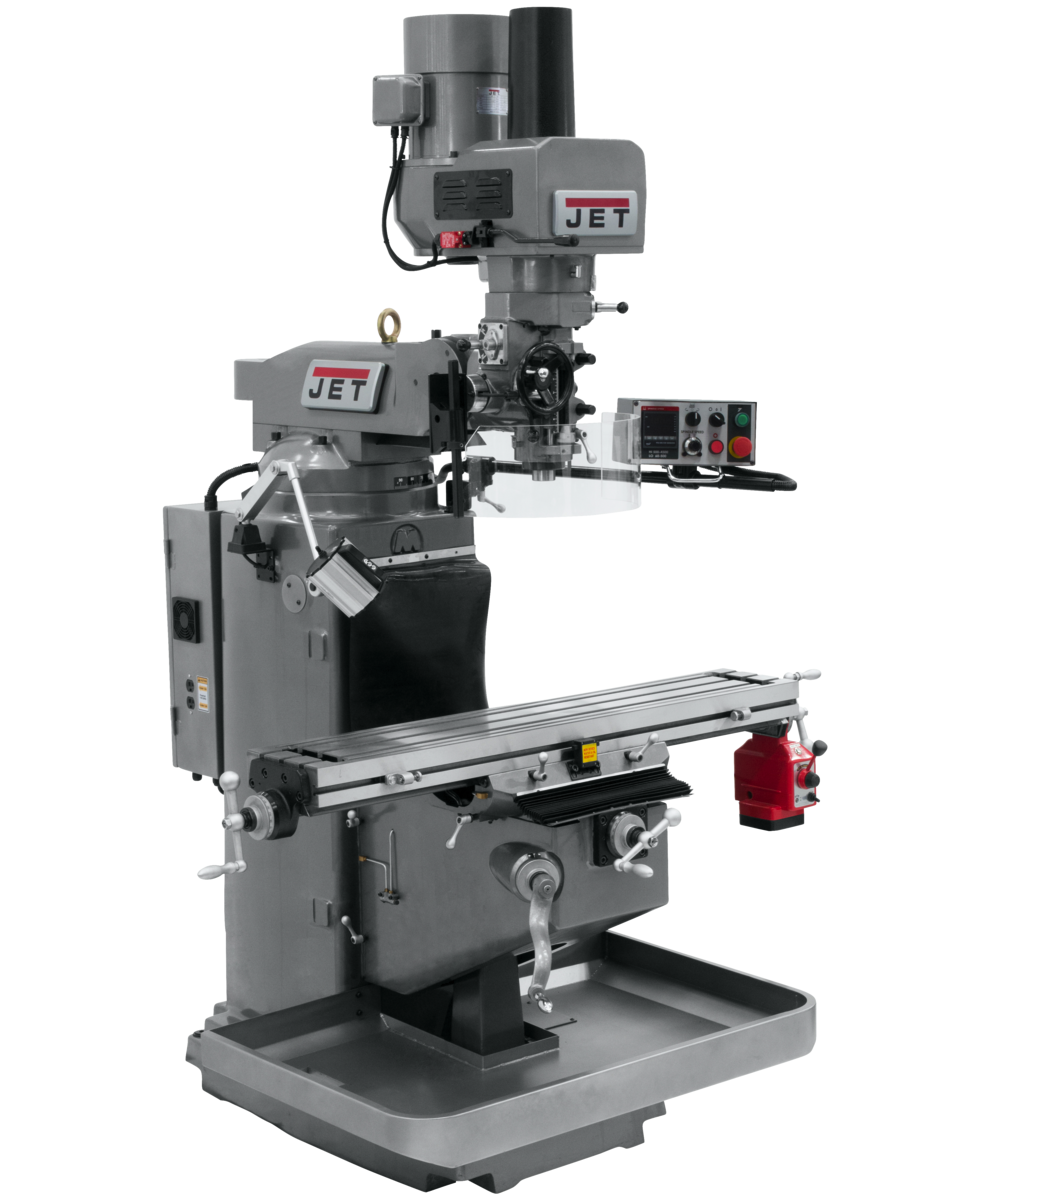 JTM-949EVS Mill With X-Axis Powerfeed and Air Powered Draw Bar